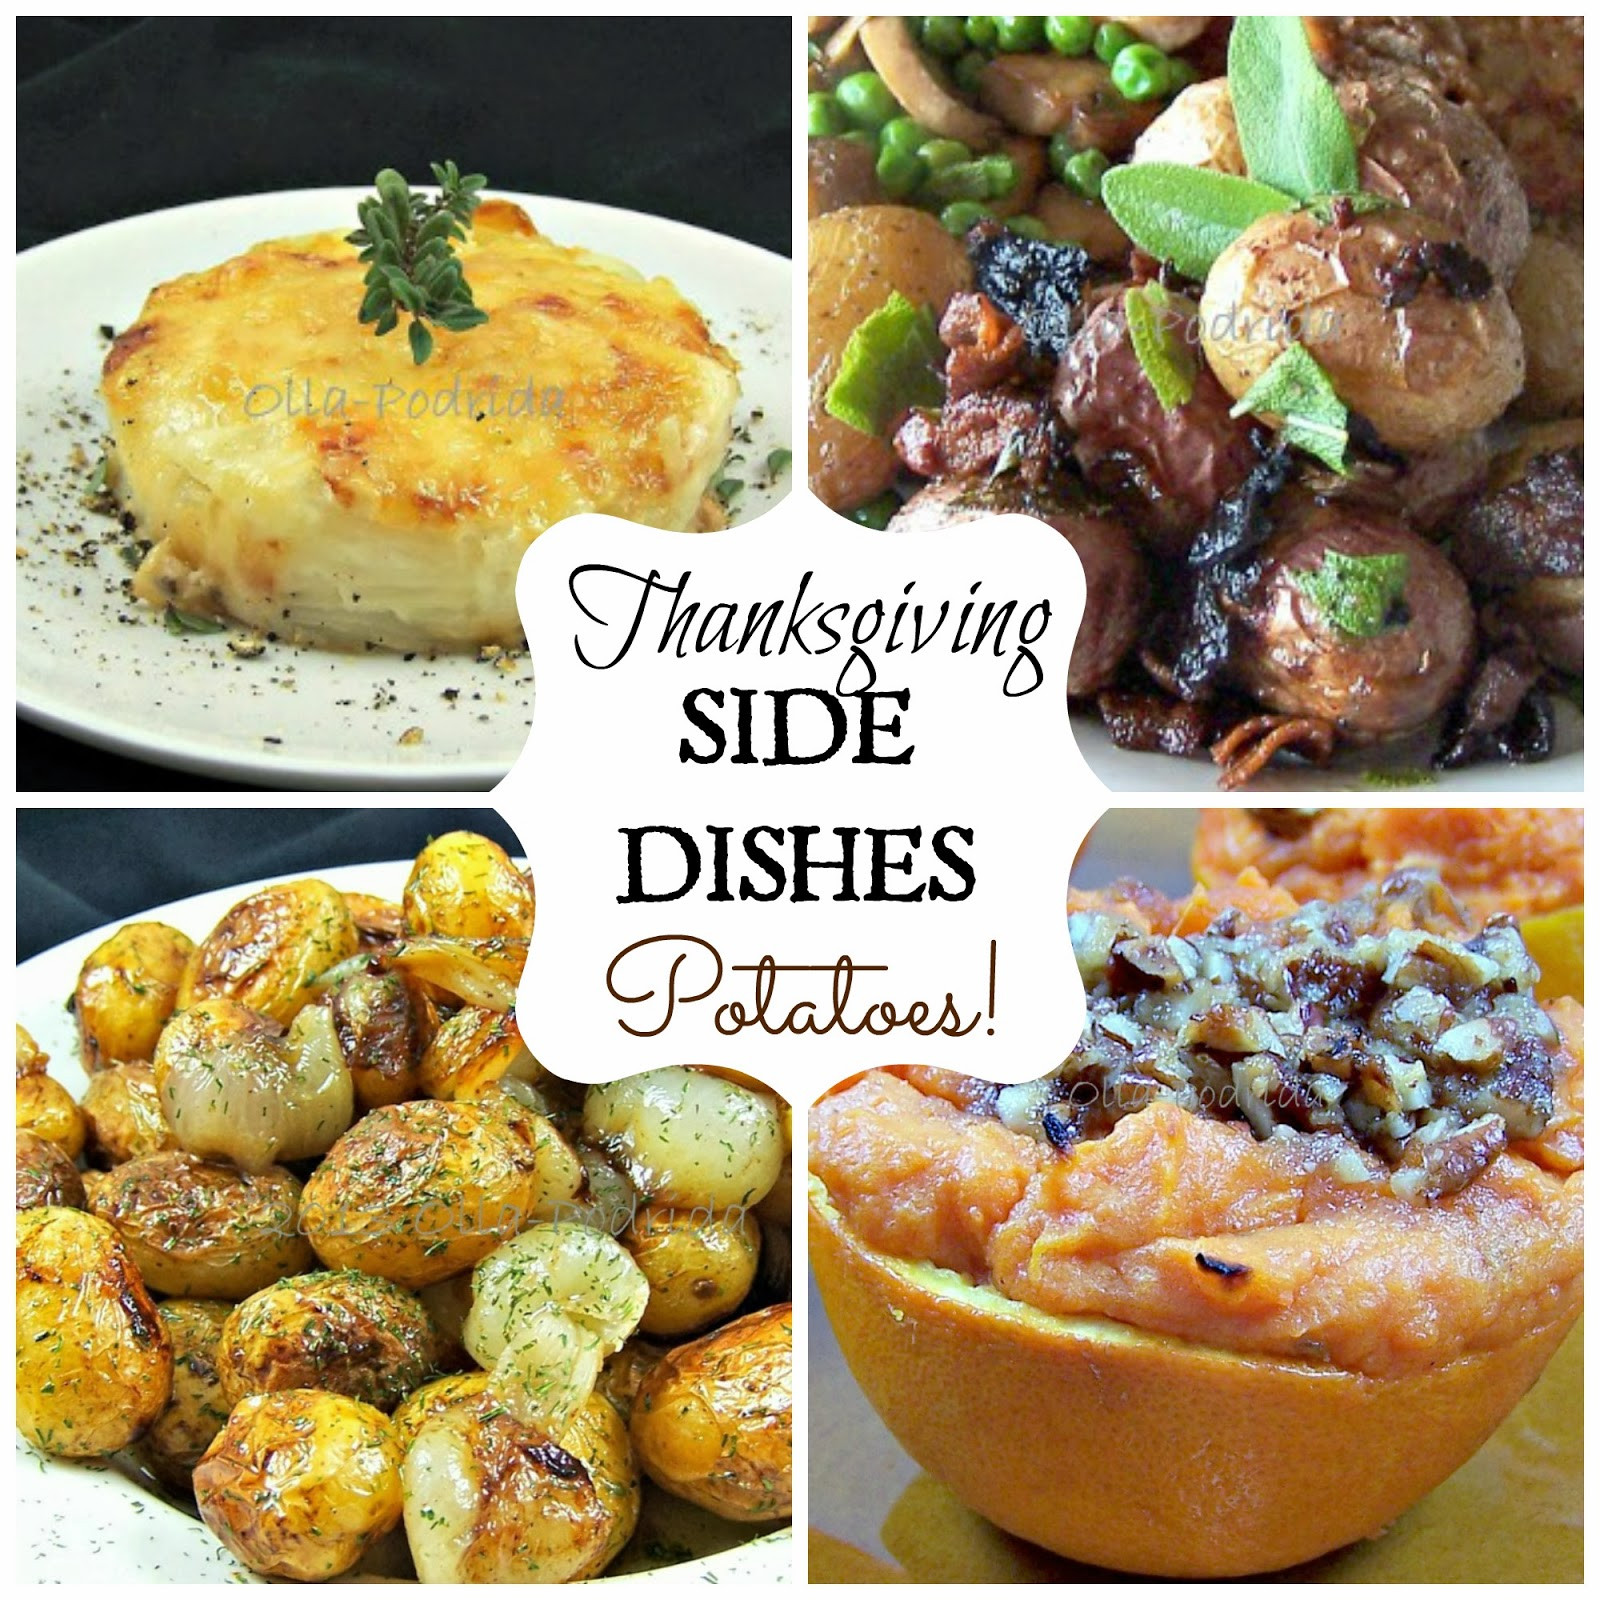 Potatoes Thanksgiving Side Dishes  Olla Podrida Thanksgiving Side Dishes Potatoes